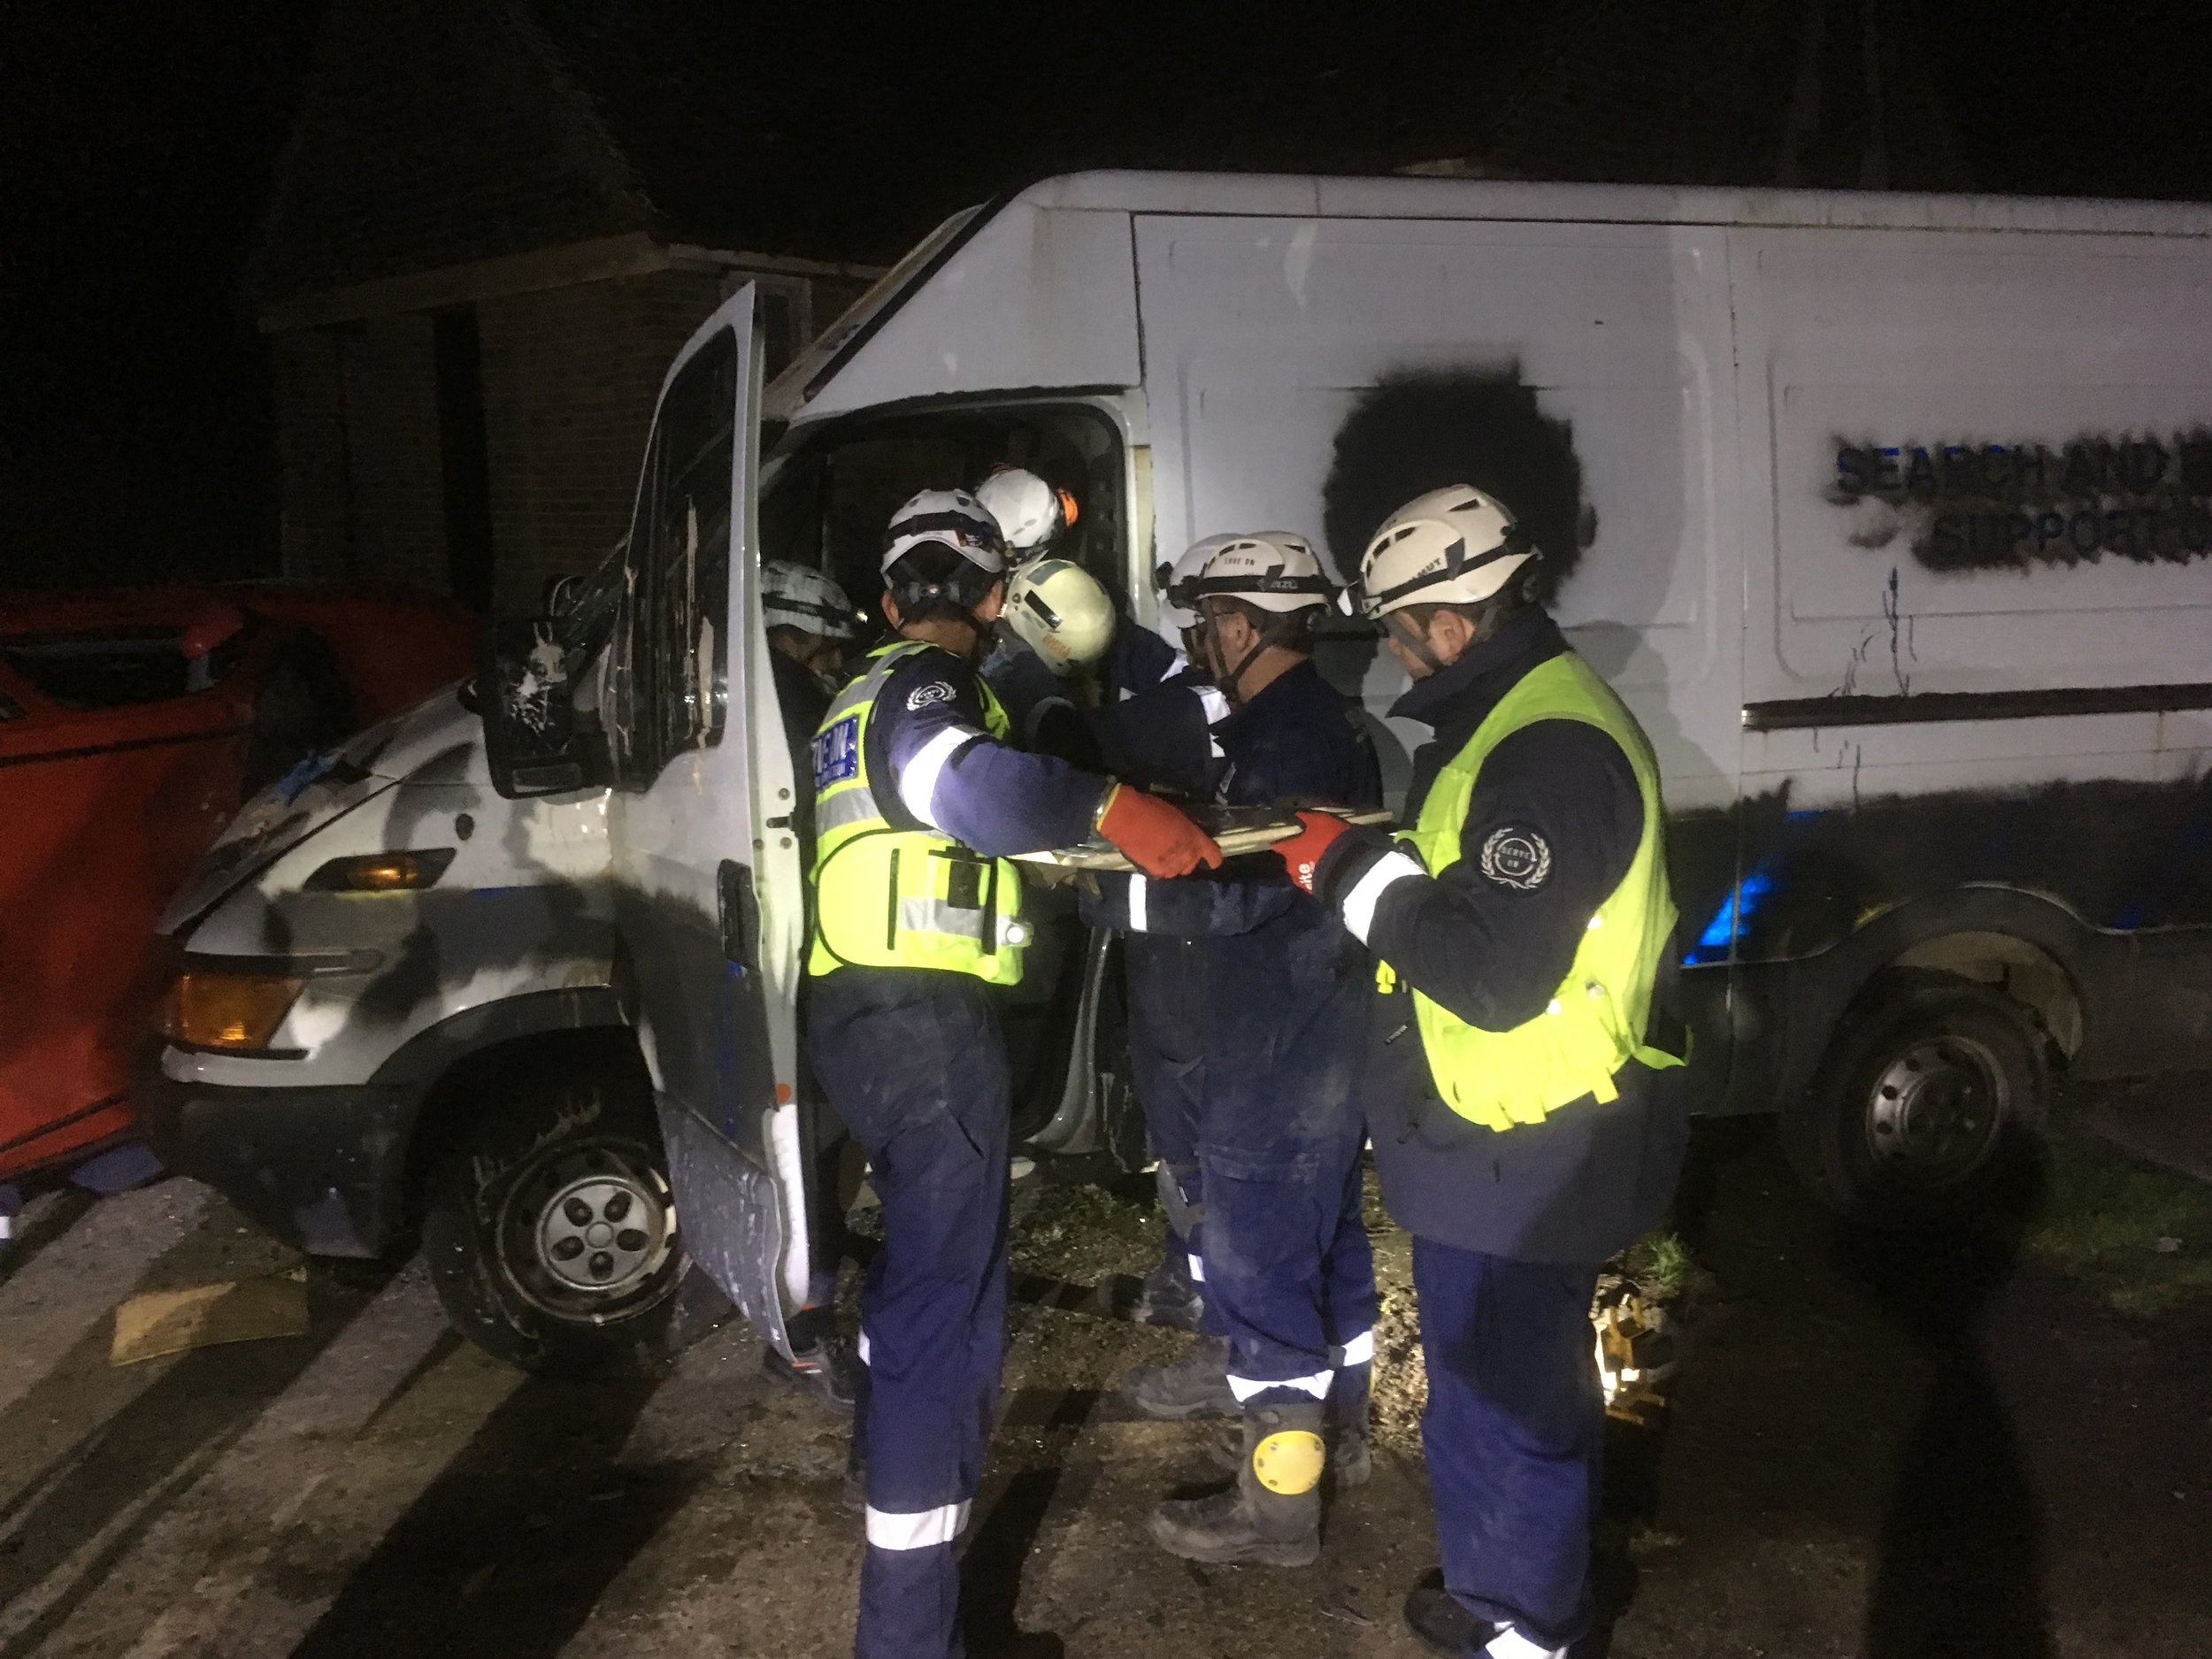 Trainers on the UK Sport elite coaching programme carry out a rescue in a road traffic accident scenario during a disaster experience with Serve On humanitarian response charity.